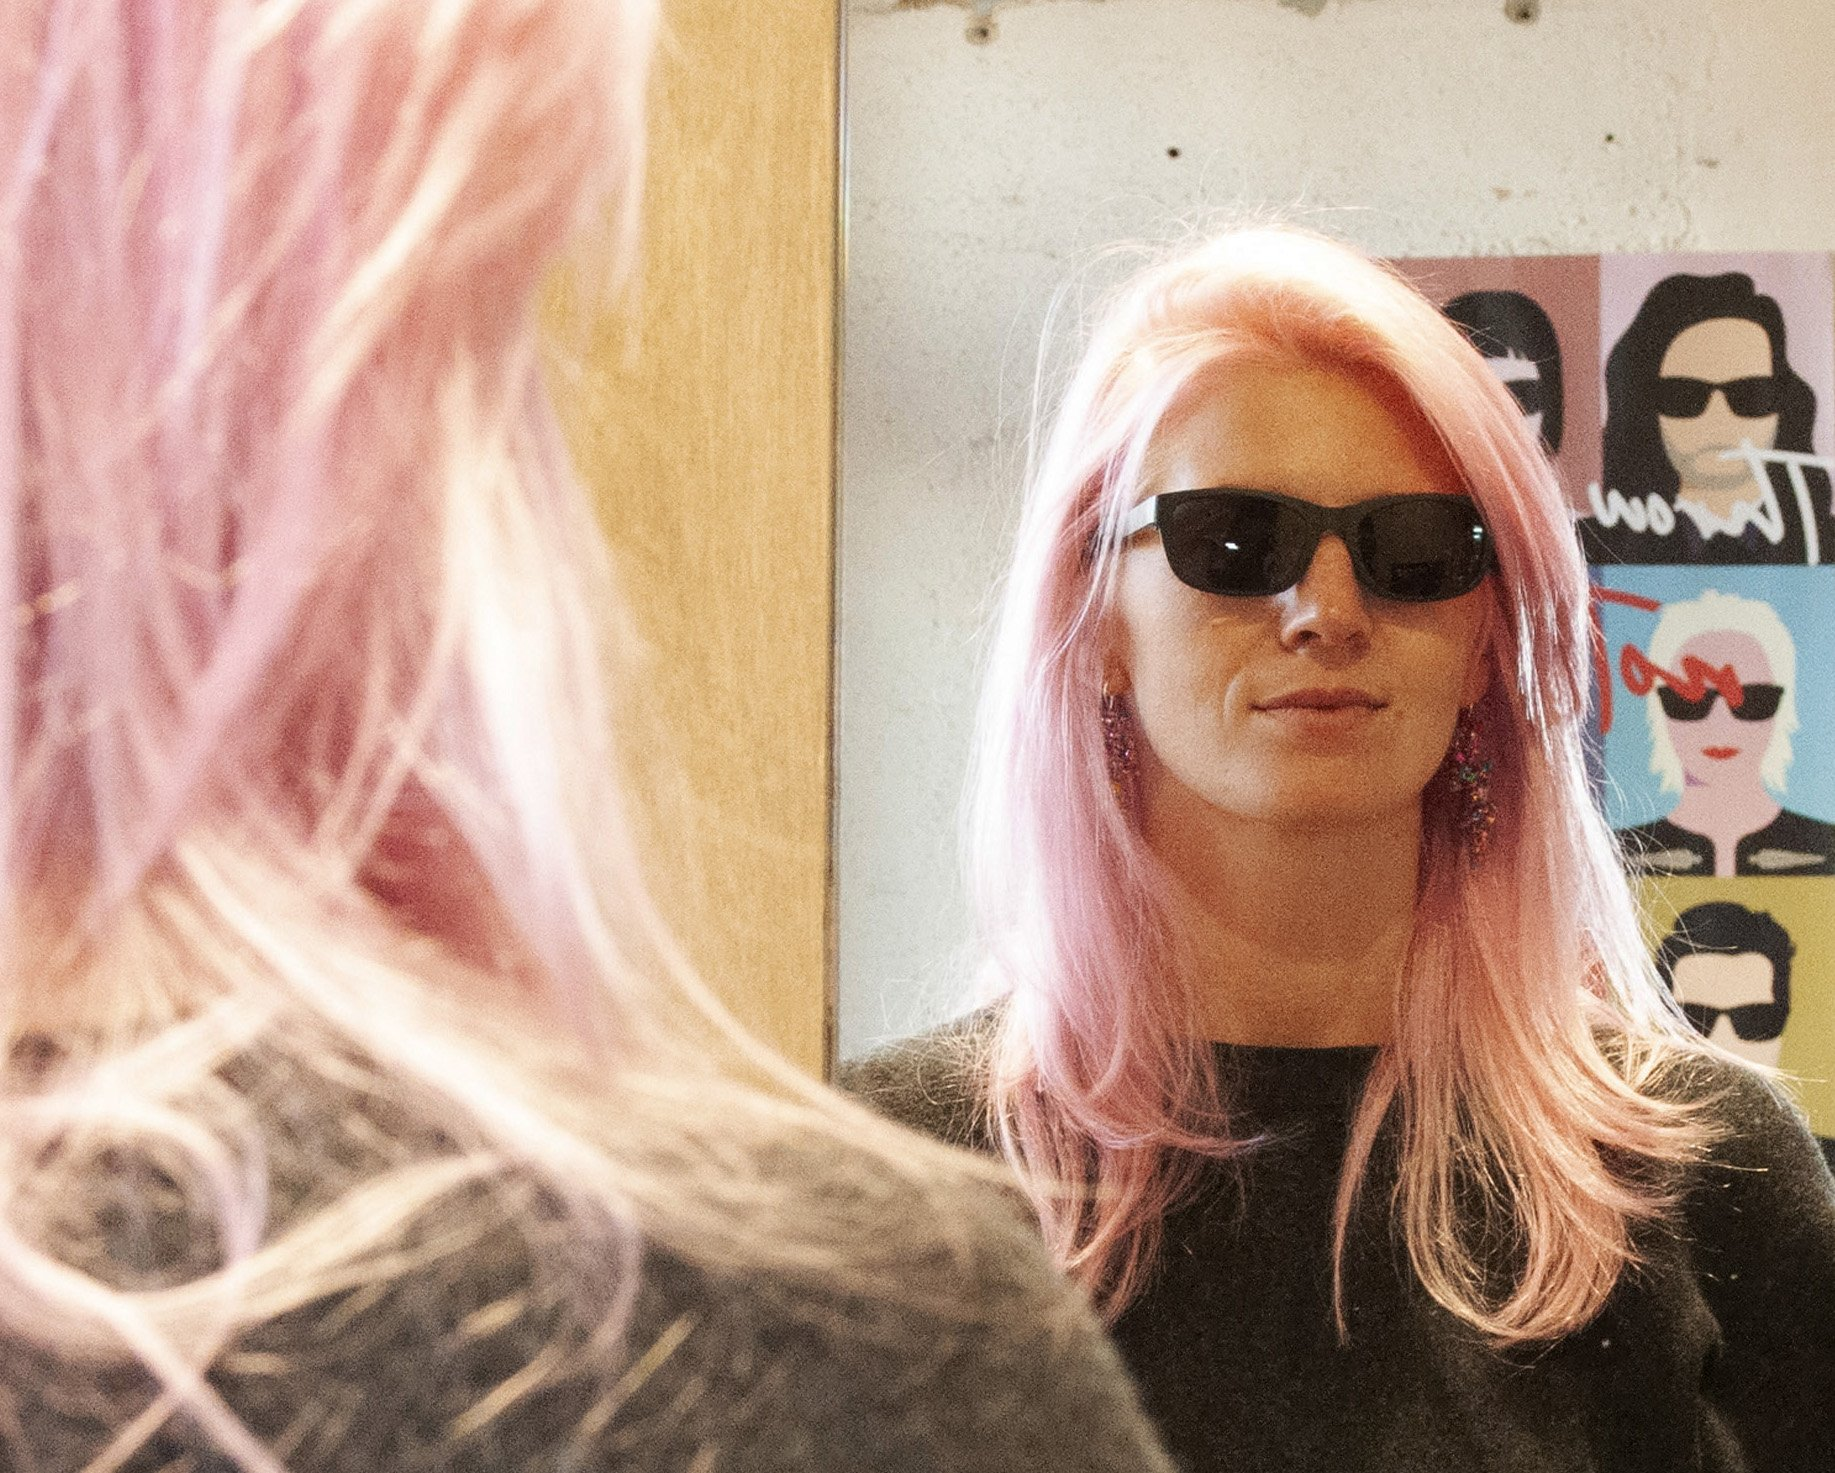 World First Sunglasses Made From Recycled Shampoo Bottles